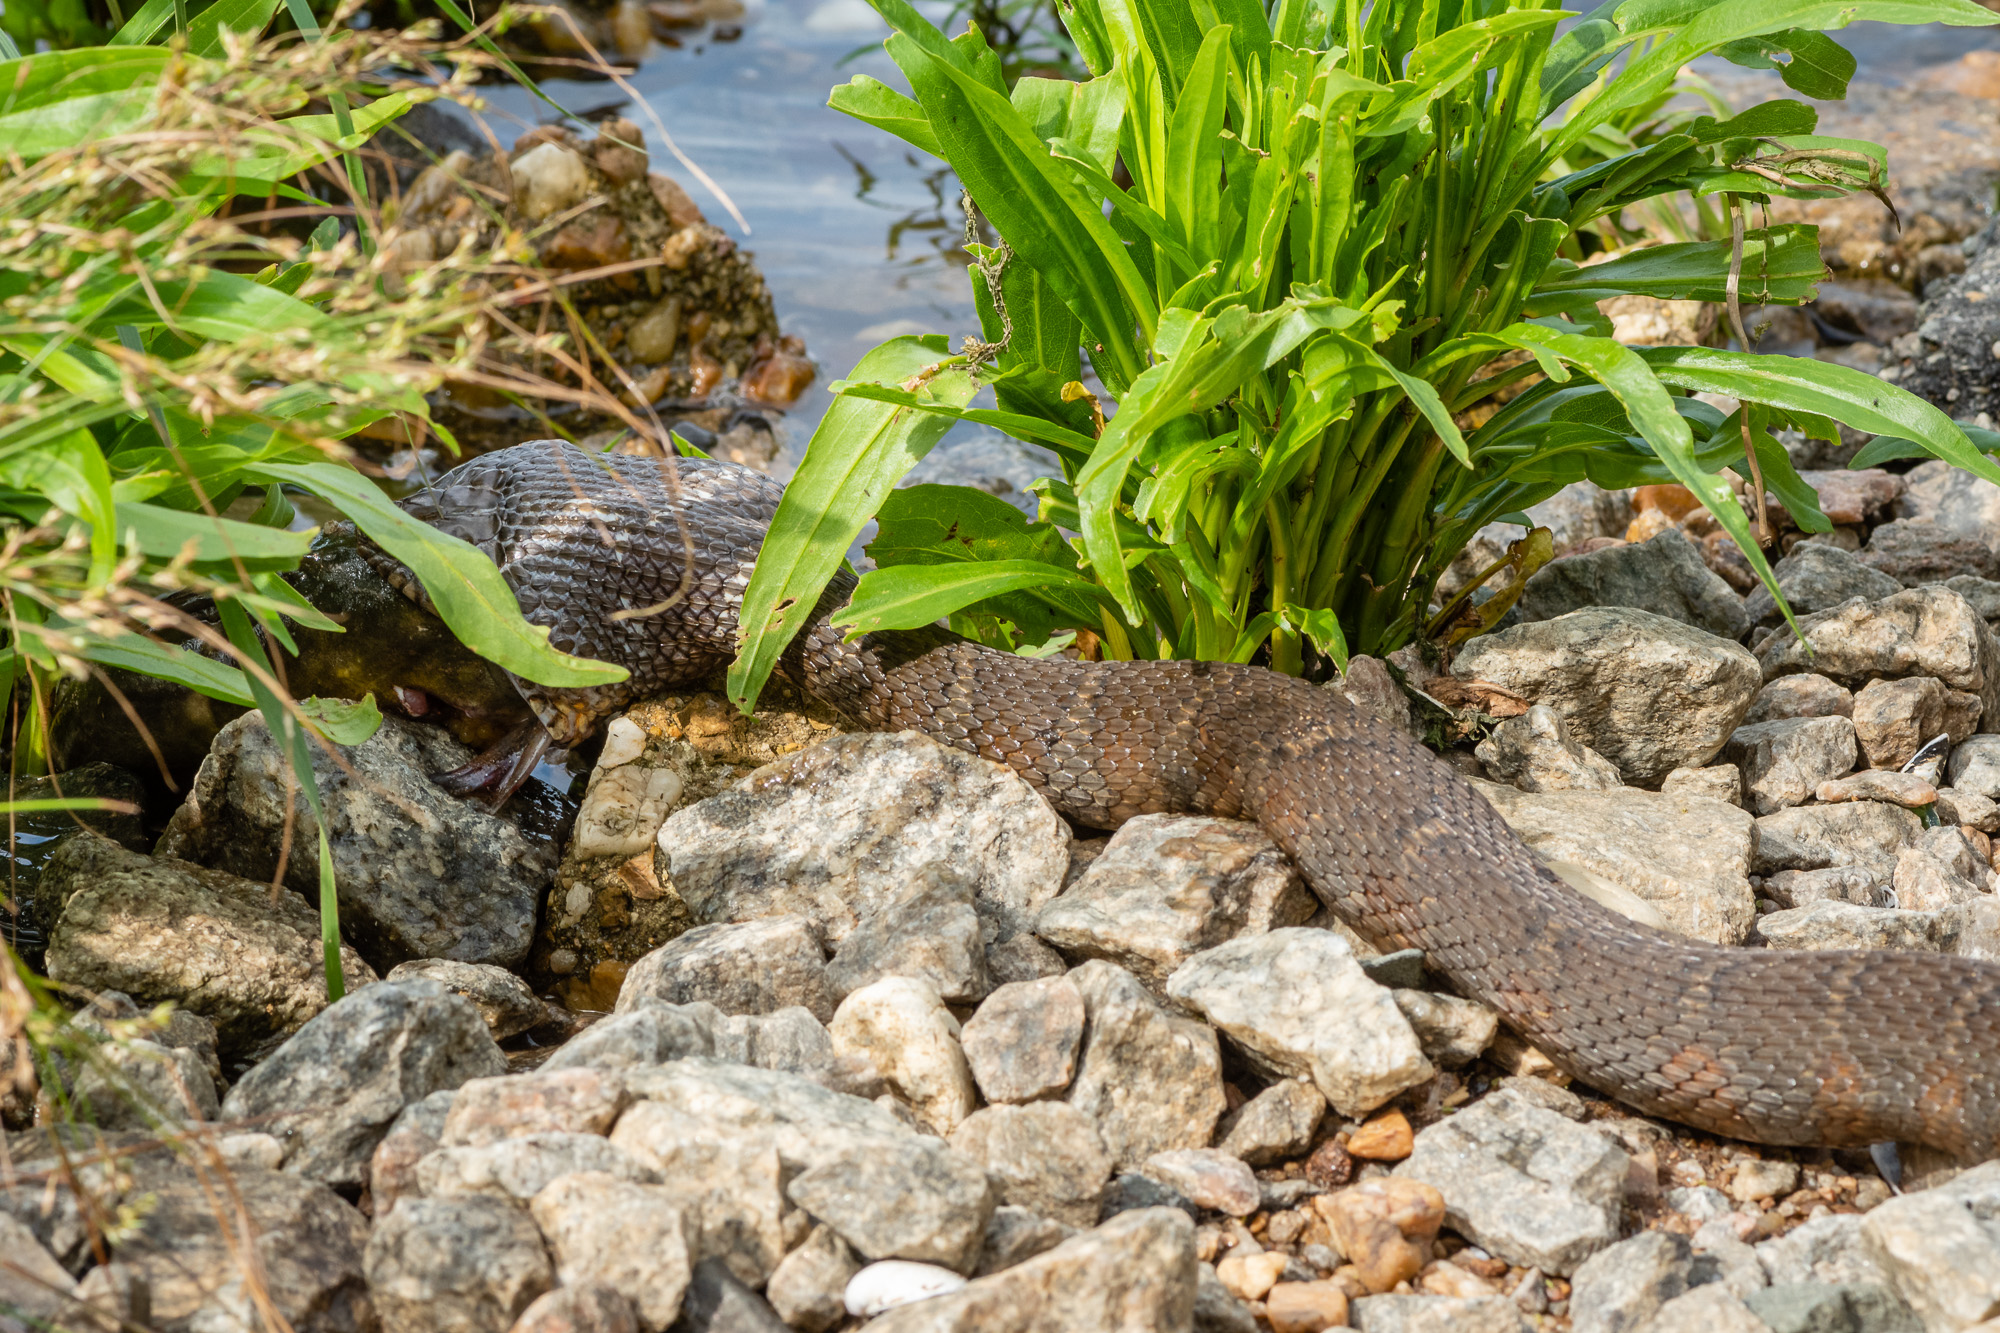 I approached as close to the Northern Watersnake as I thought I could without causing it stress.